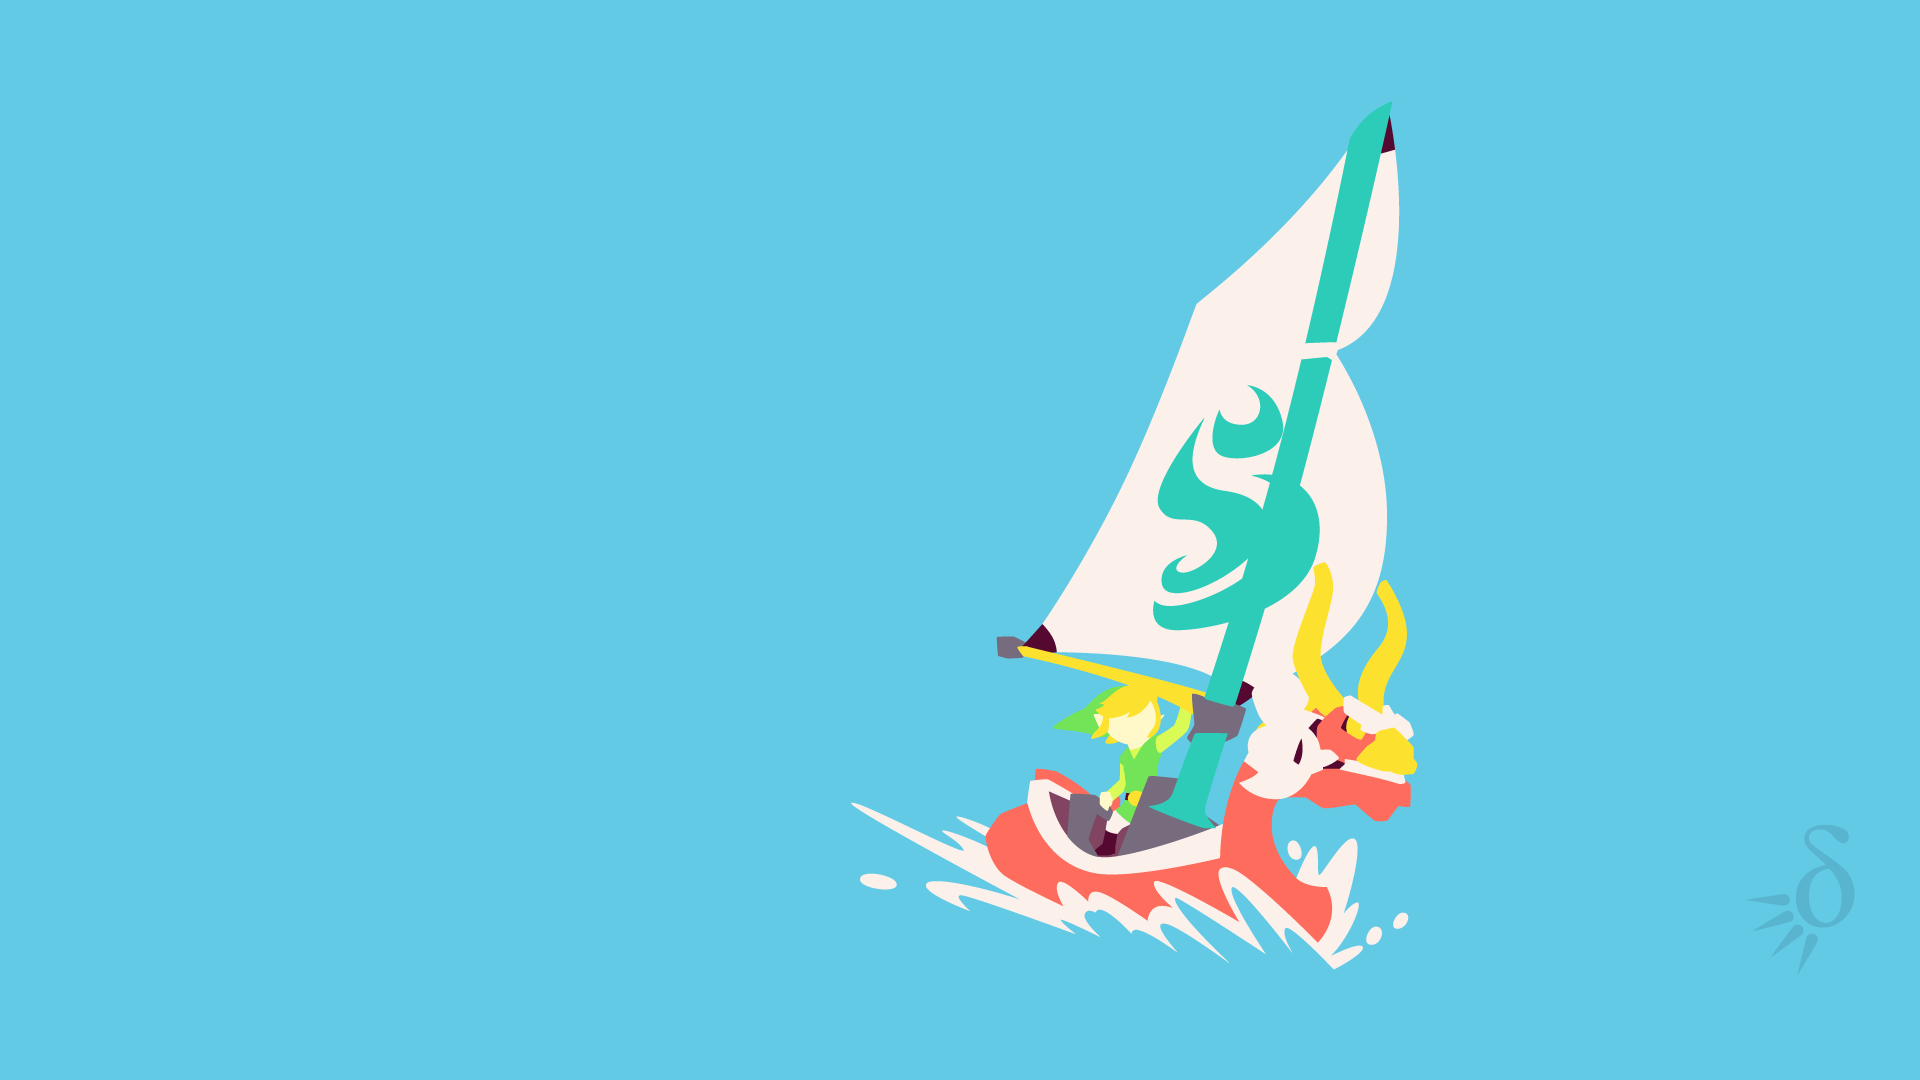 Free Download Wind Waker Wallpapers 1920x1080 For Your